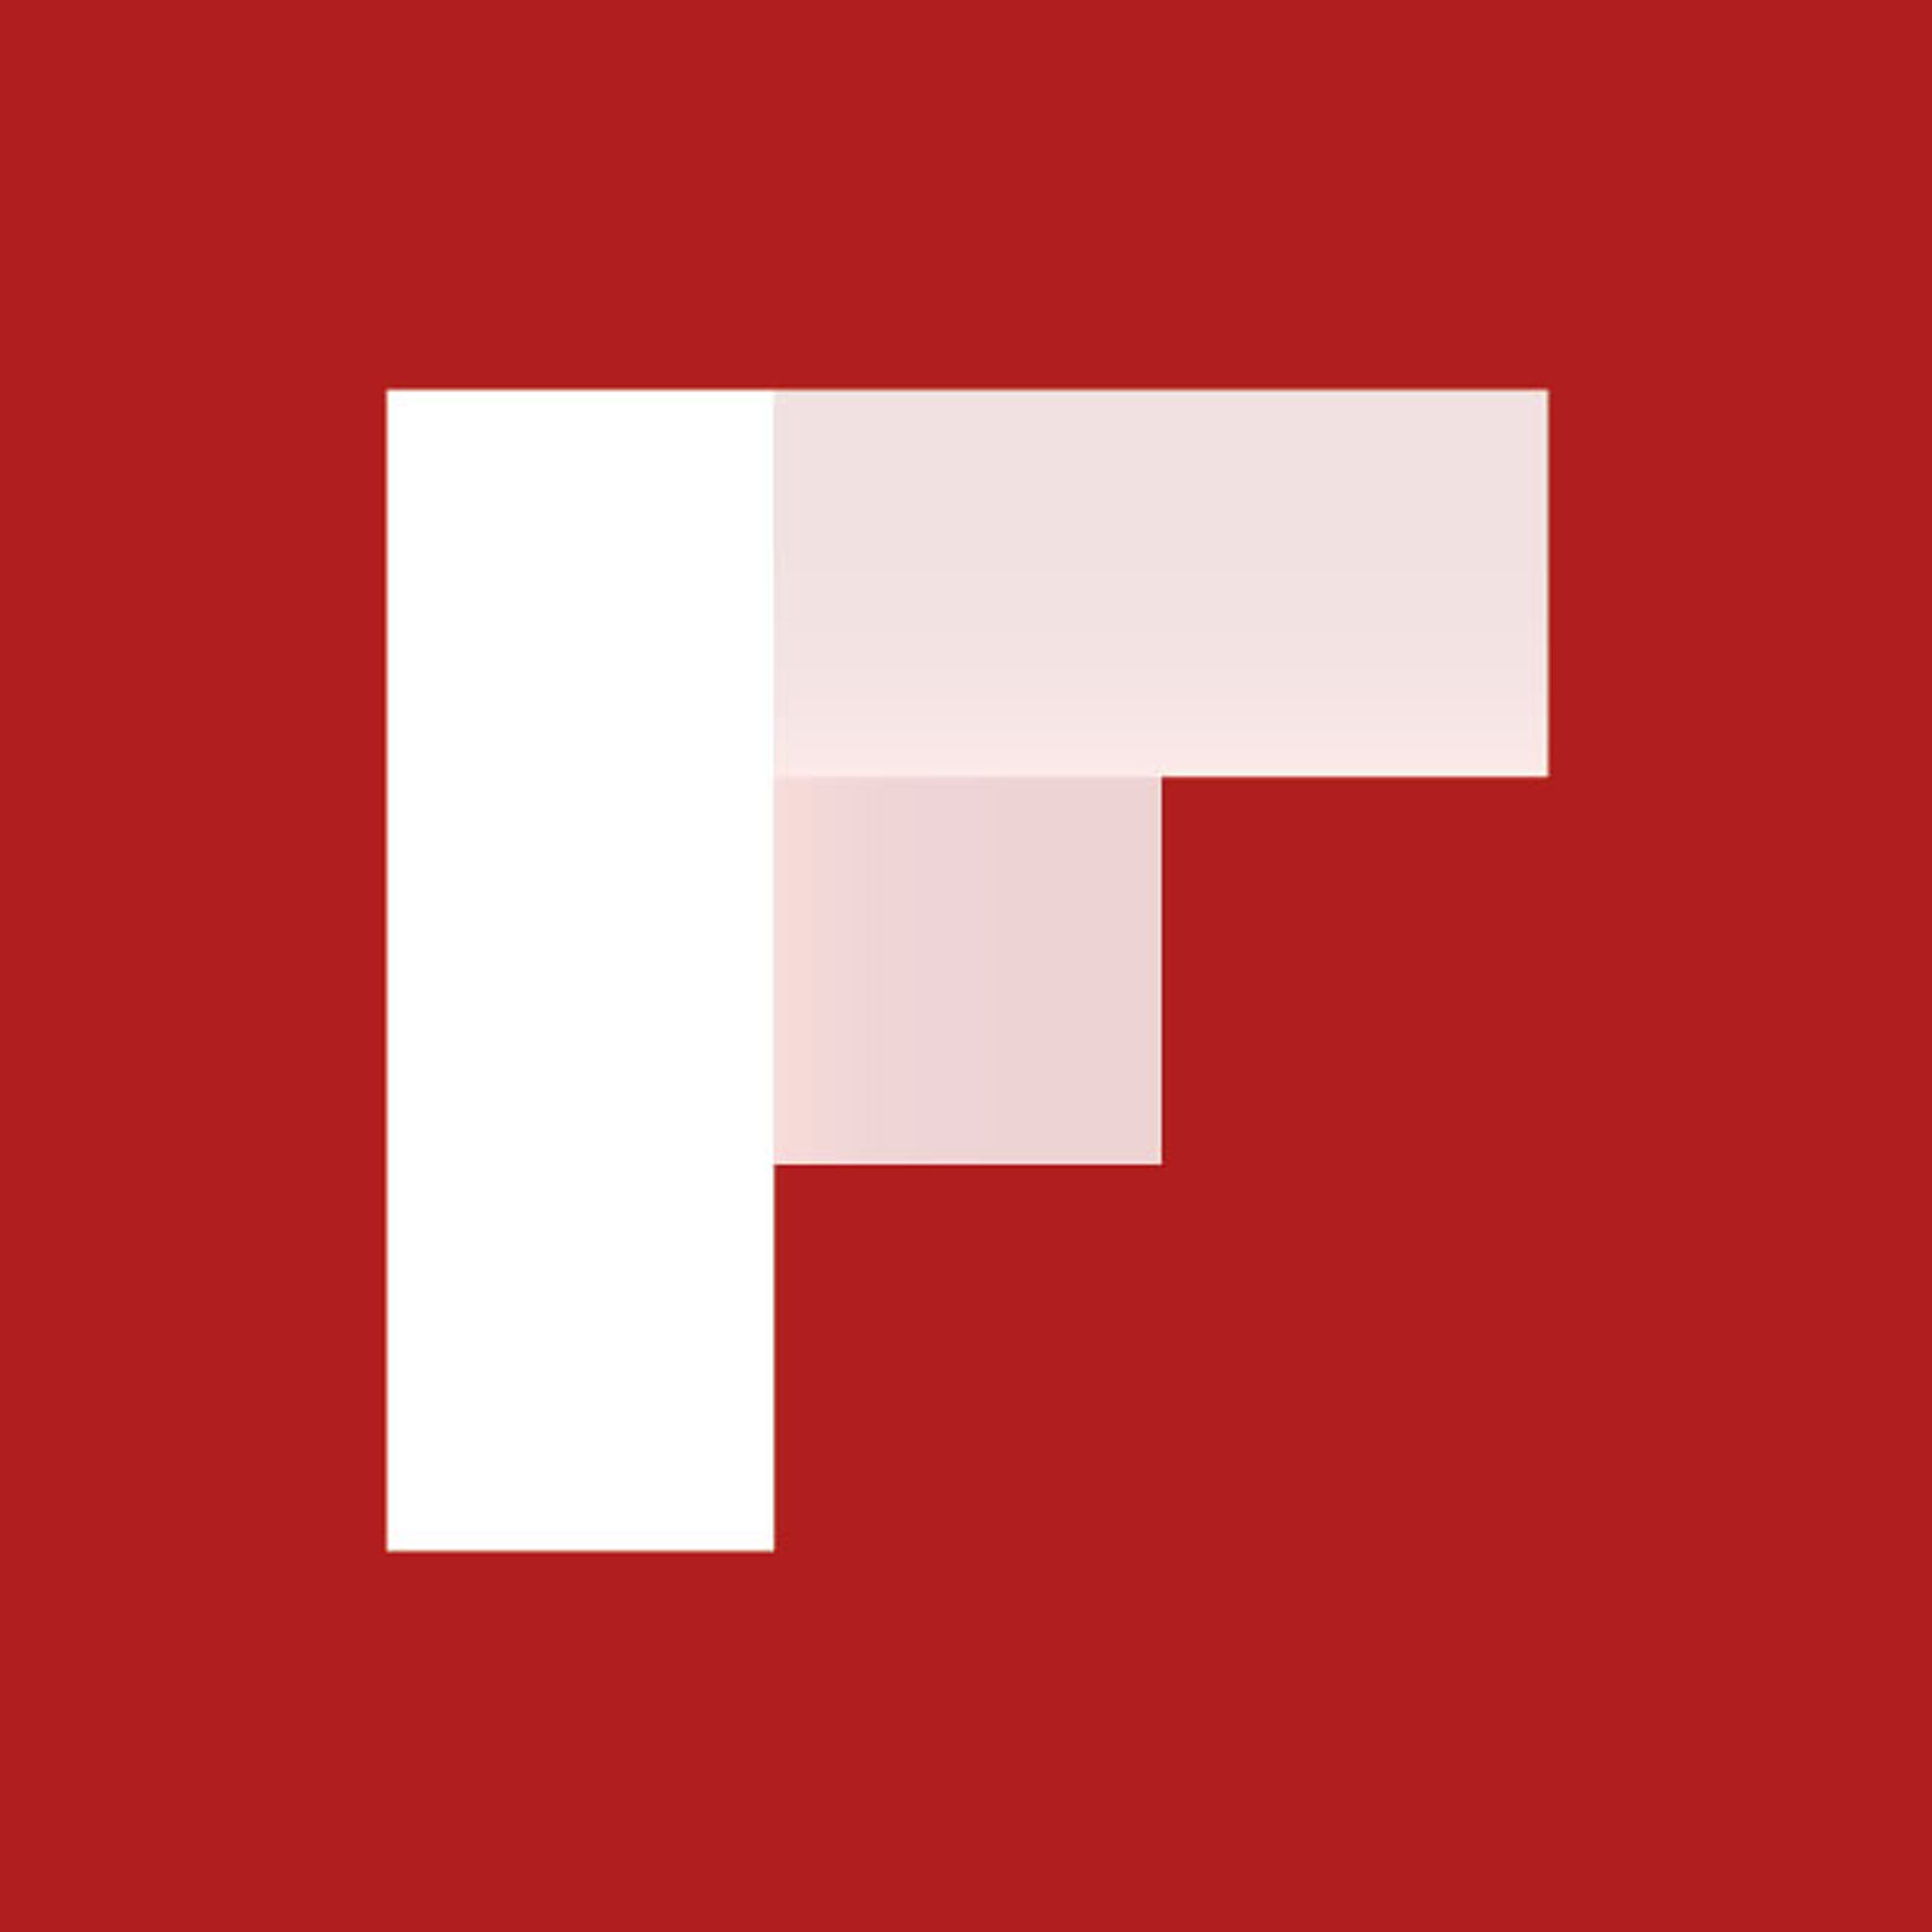 Flipboard Launches New, Verified Profiles For Publishers, Turns On 'End Cards' For Greater Content Discovery